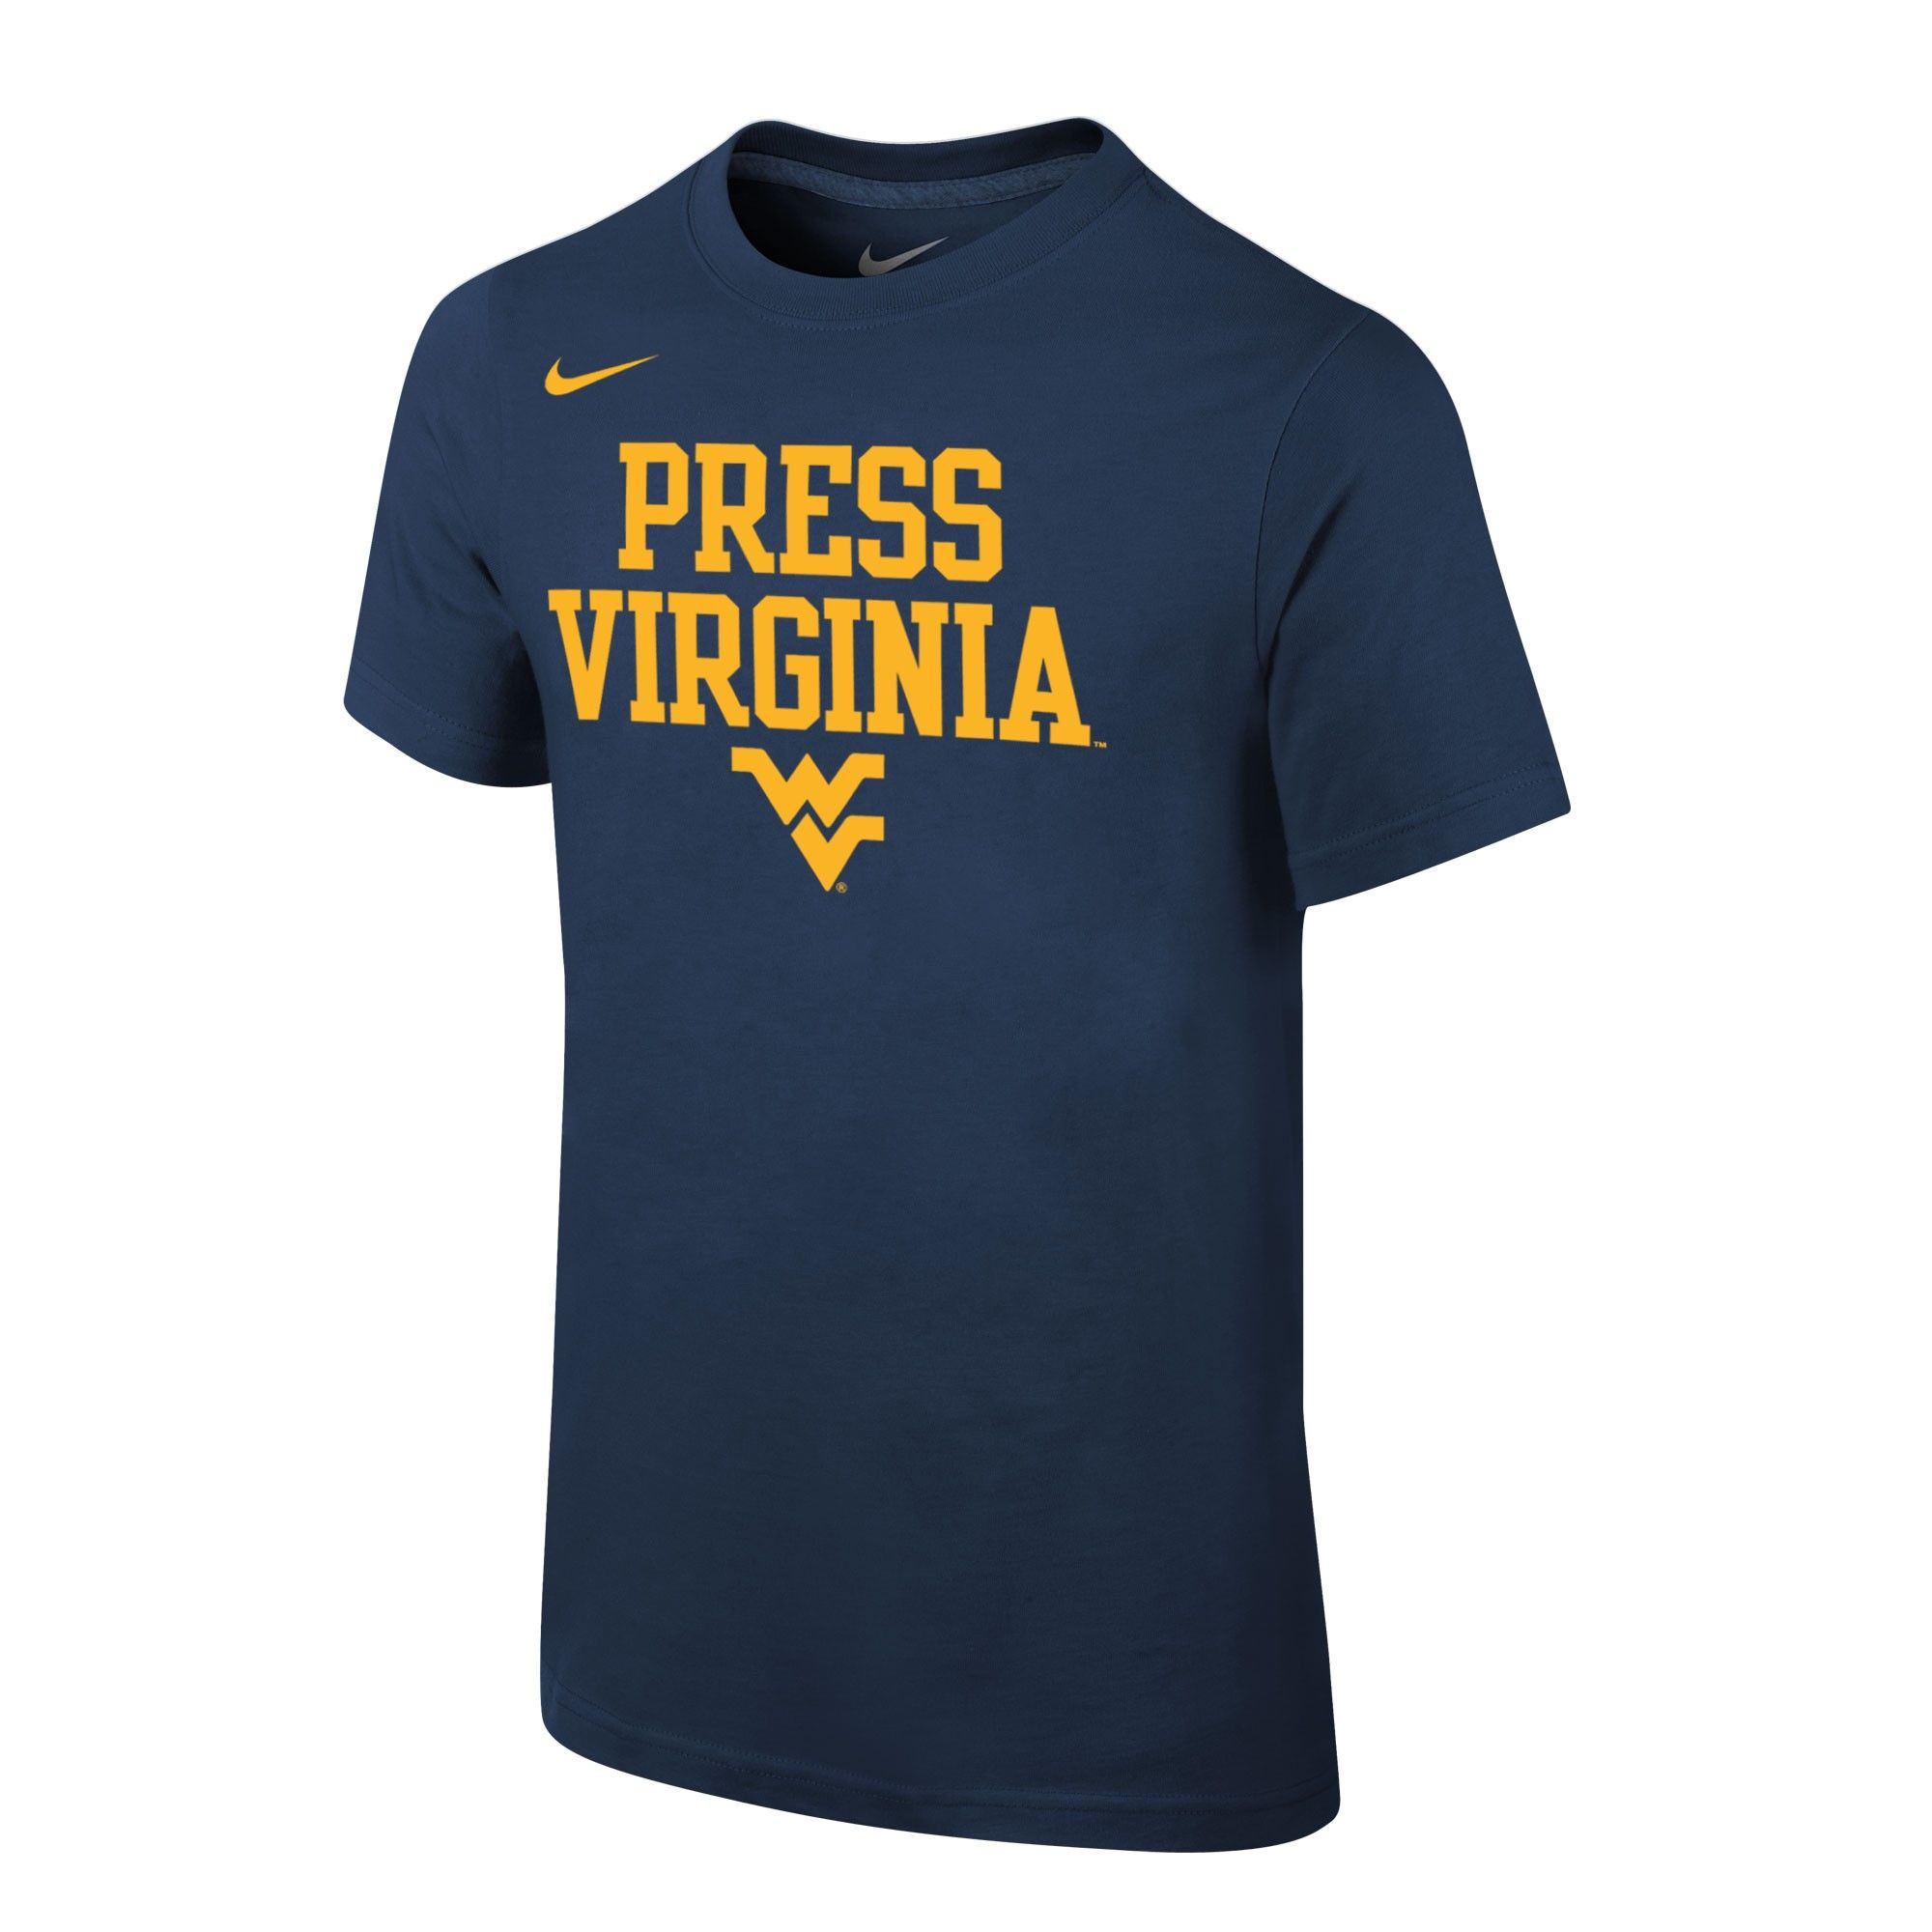 Astonishing Nike Youth Wvu Basketball Press Virginia Tee Wvu Creativecarmelina Interior Chair Design Creativecarmelinacom